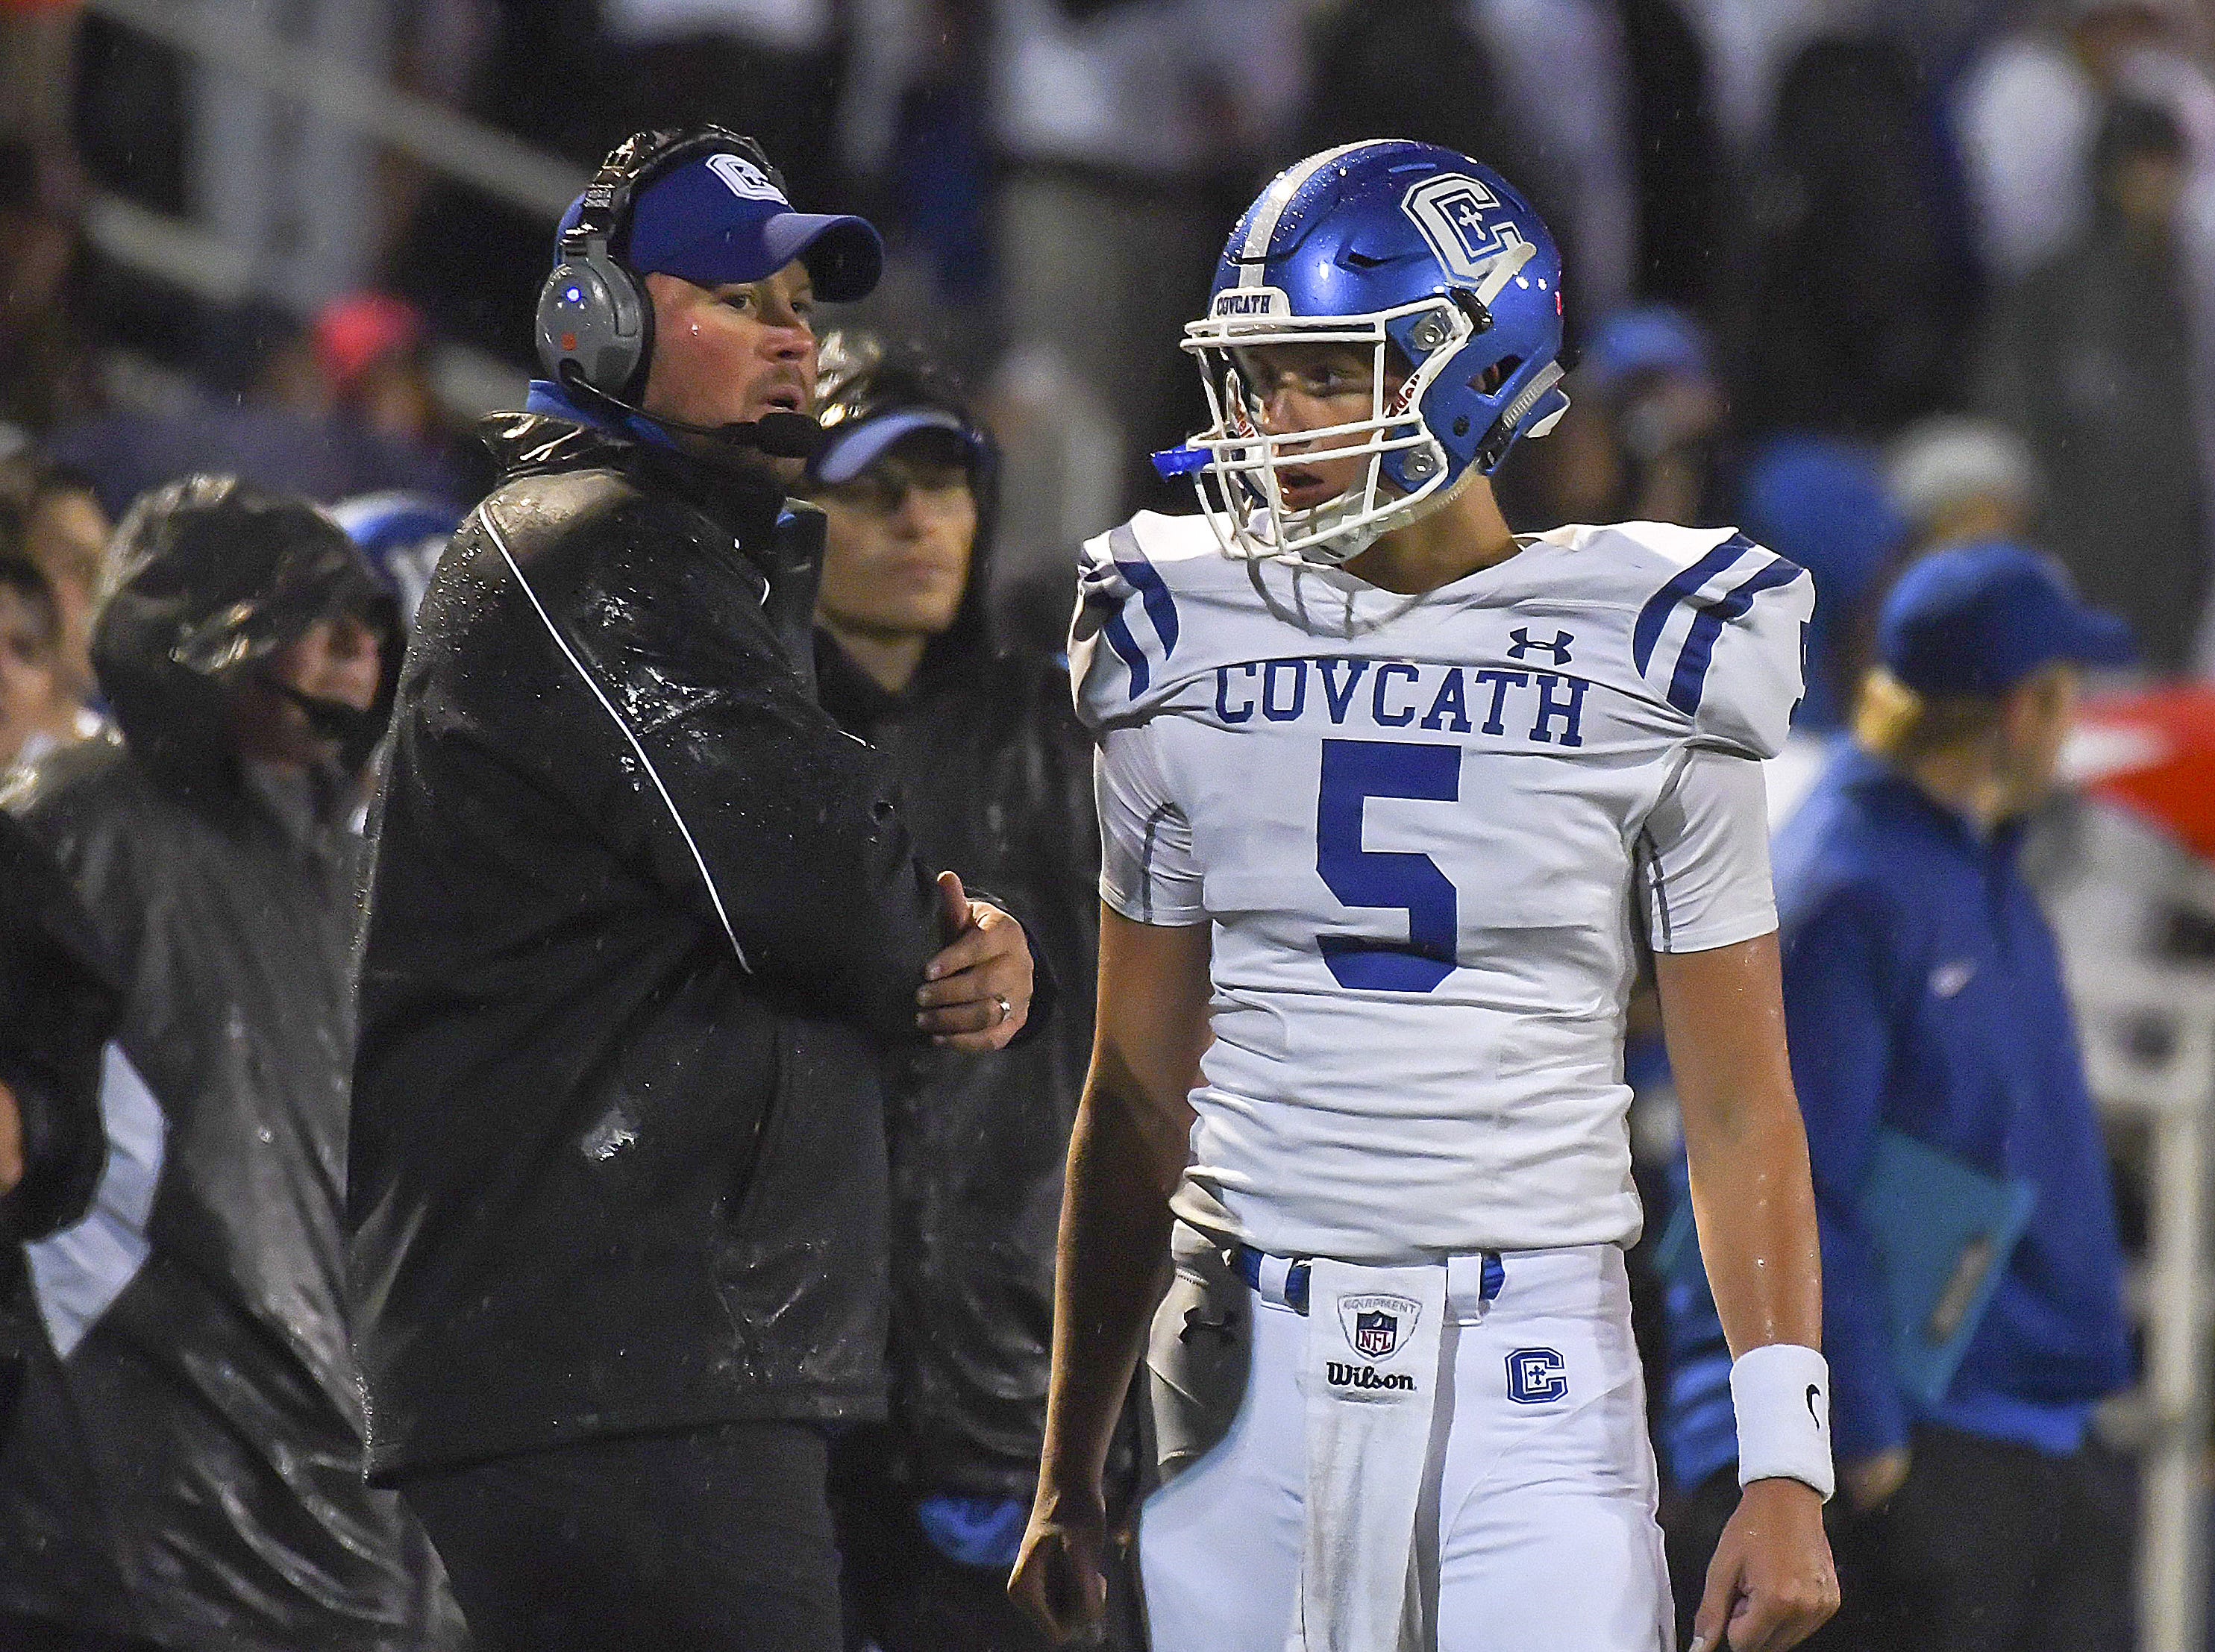 Head coach Eddie Eviston and Caleb Jacob of Covington Catholic talk during a timeout, Highlands High School, Ft. Thomas, KY, Friday, October 12, 2018